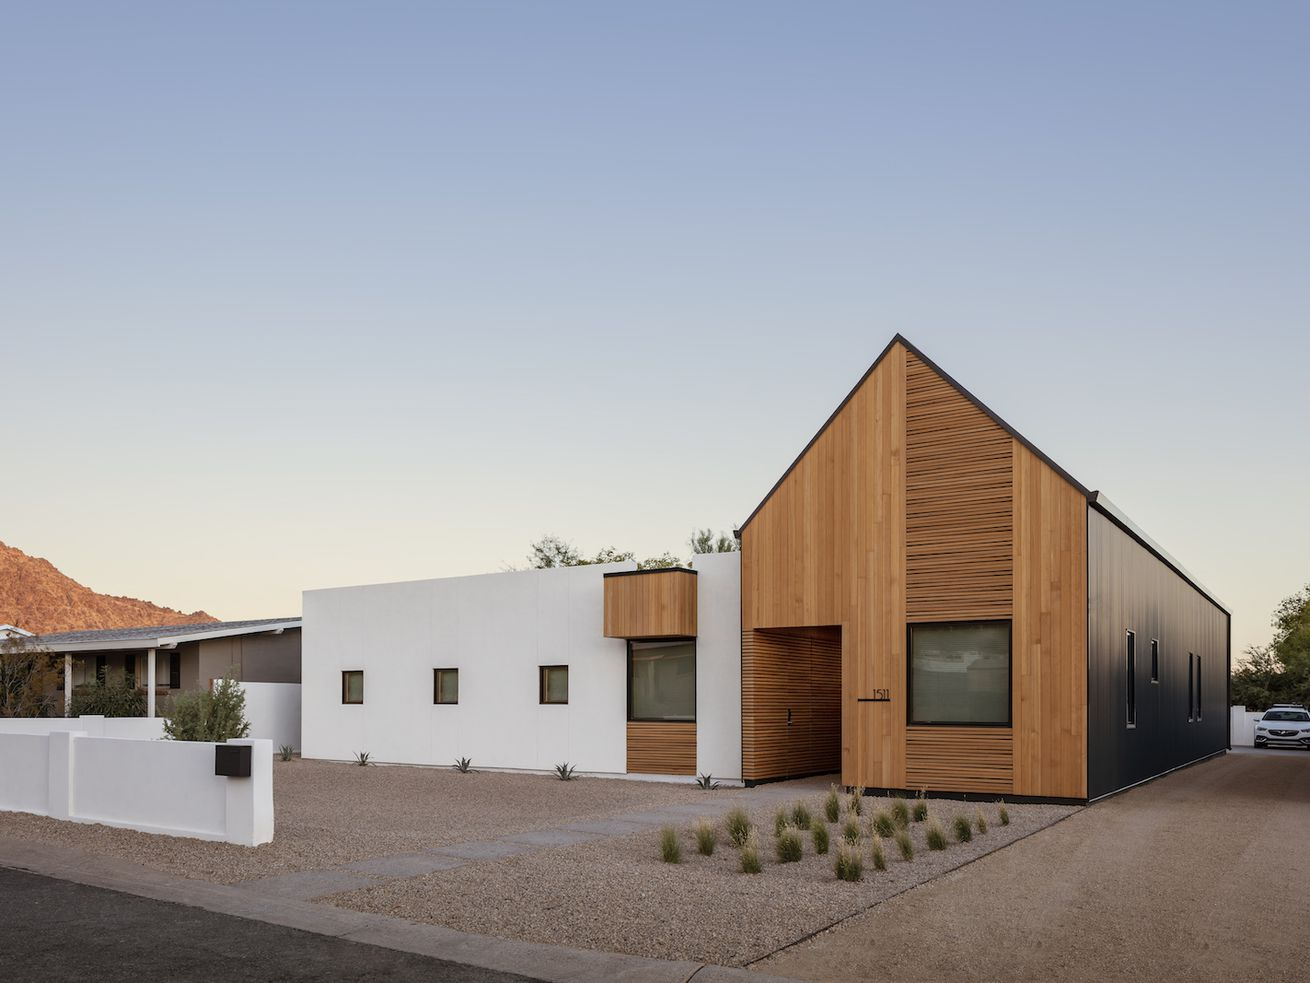 Desert modern house is big on shape and texture